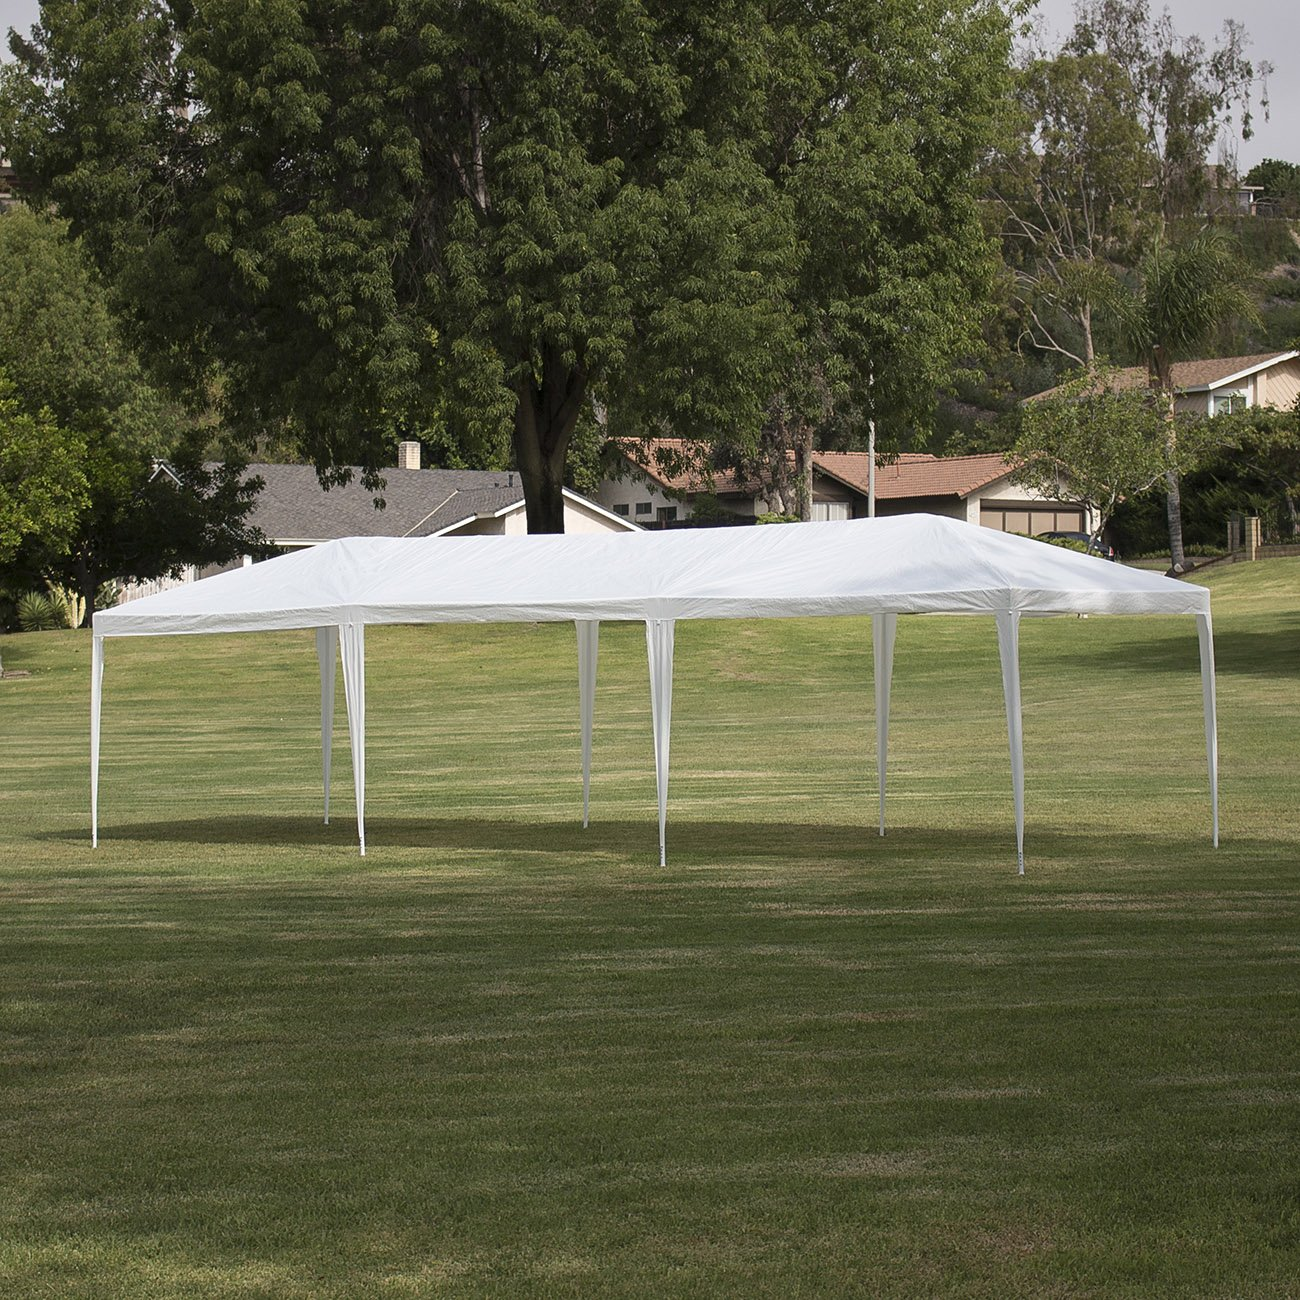 Charmant Amazon.com: Belleze Large Party Outdoor Wedding Pop Up Canopy | 10u0027 X 30u0027  Foot Gazebo White | UV Resistant Pop Up Tent | Push Up: Garden U0026 Outdoor